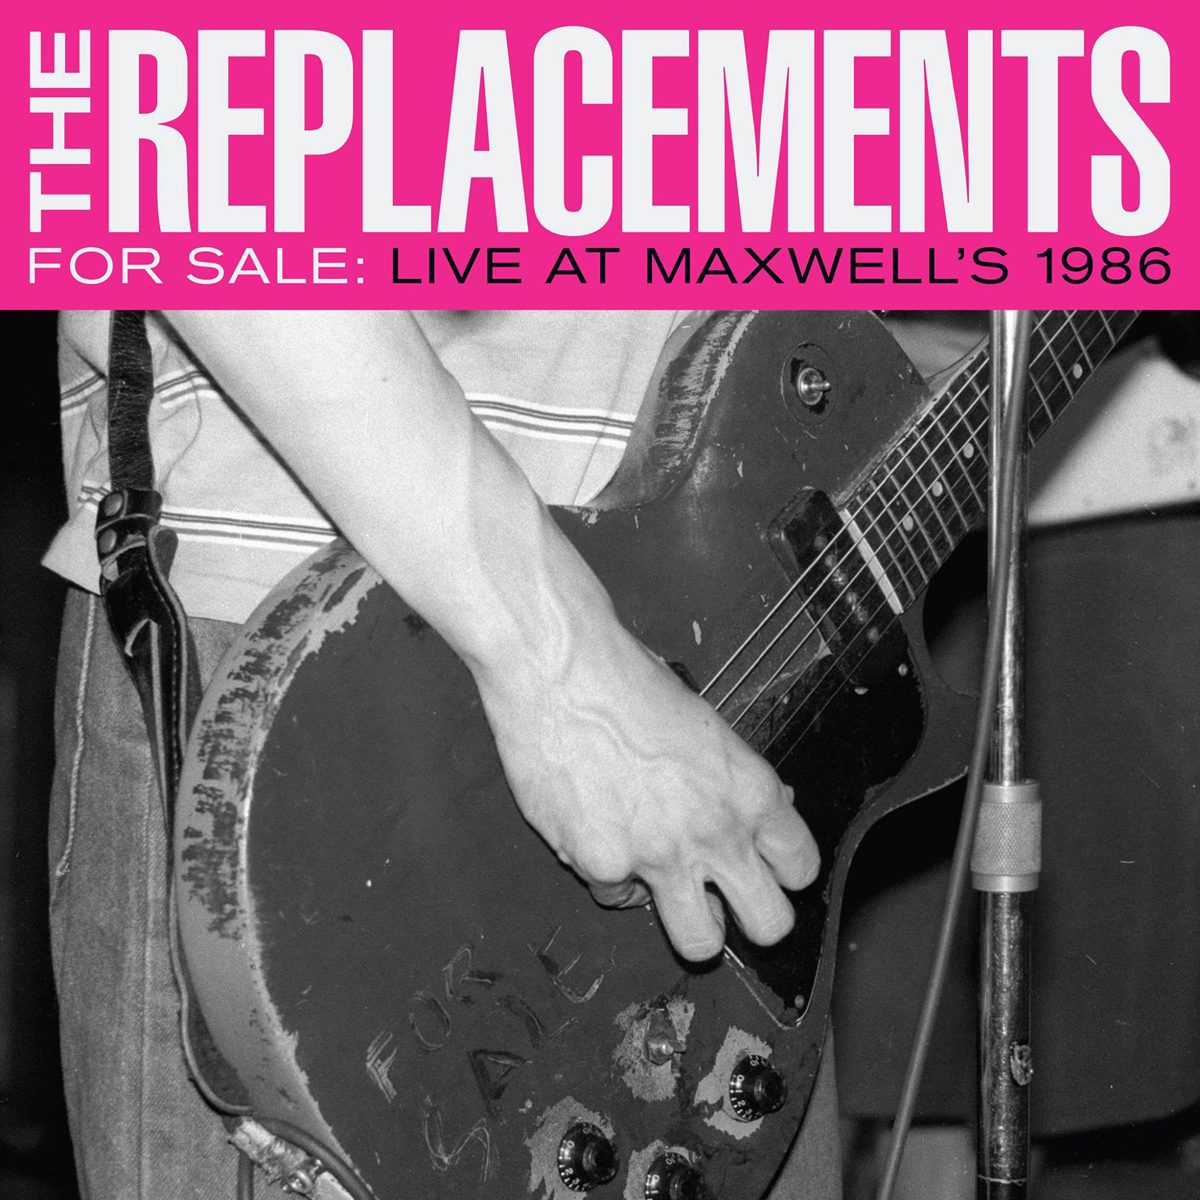 The Replacements – For Sale: Live at Maxwell's 1986 (CD)